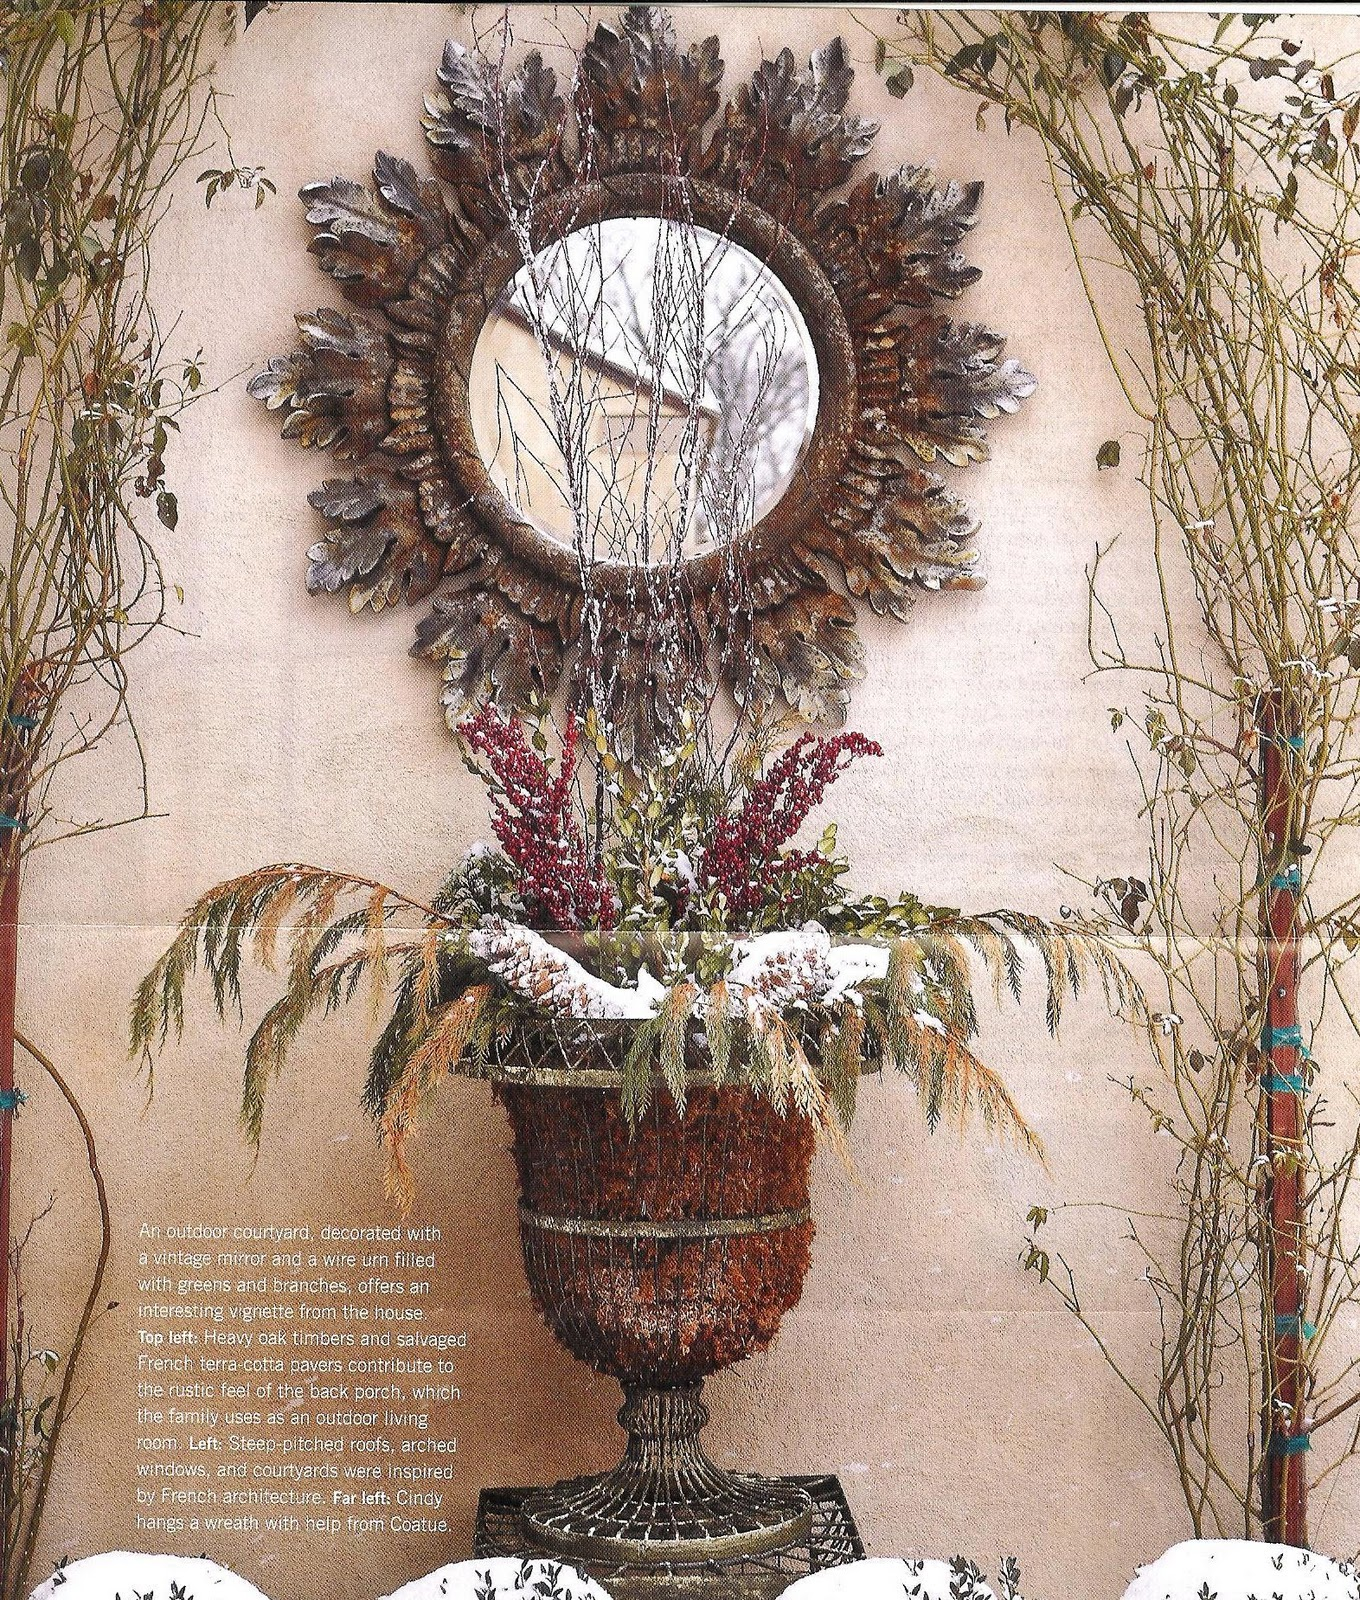 haus design decorating for winter with urns